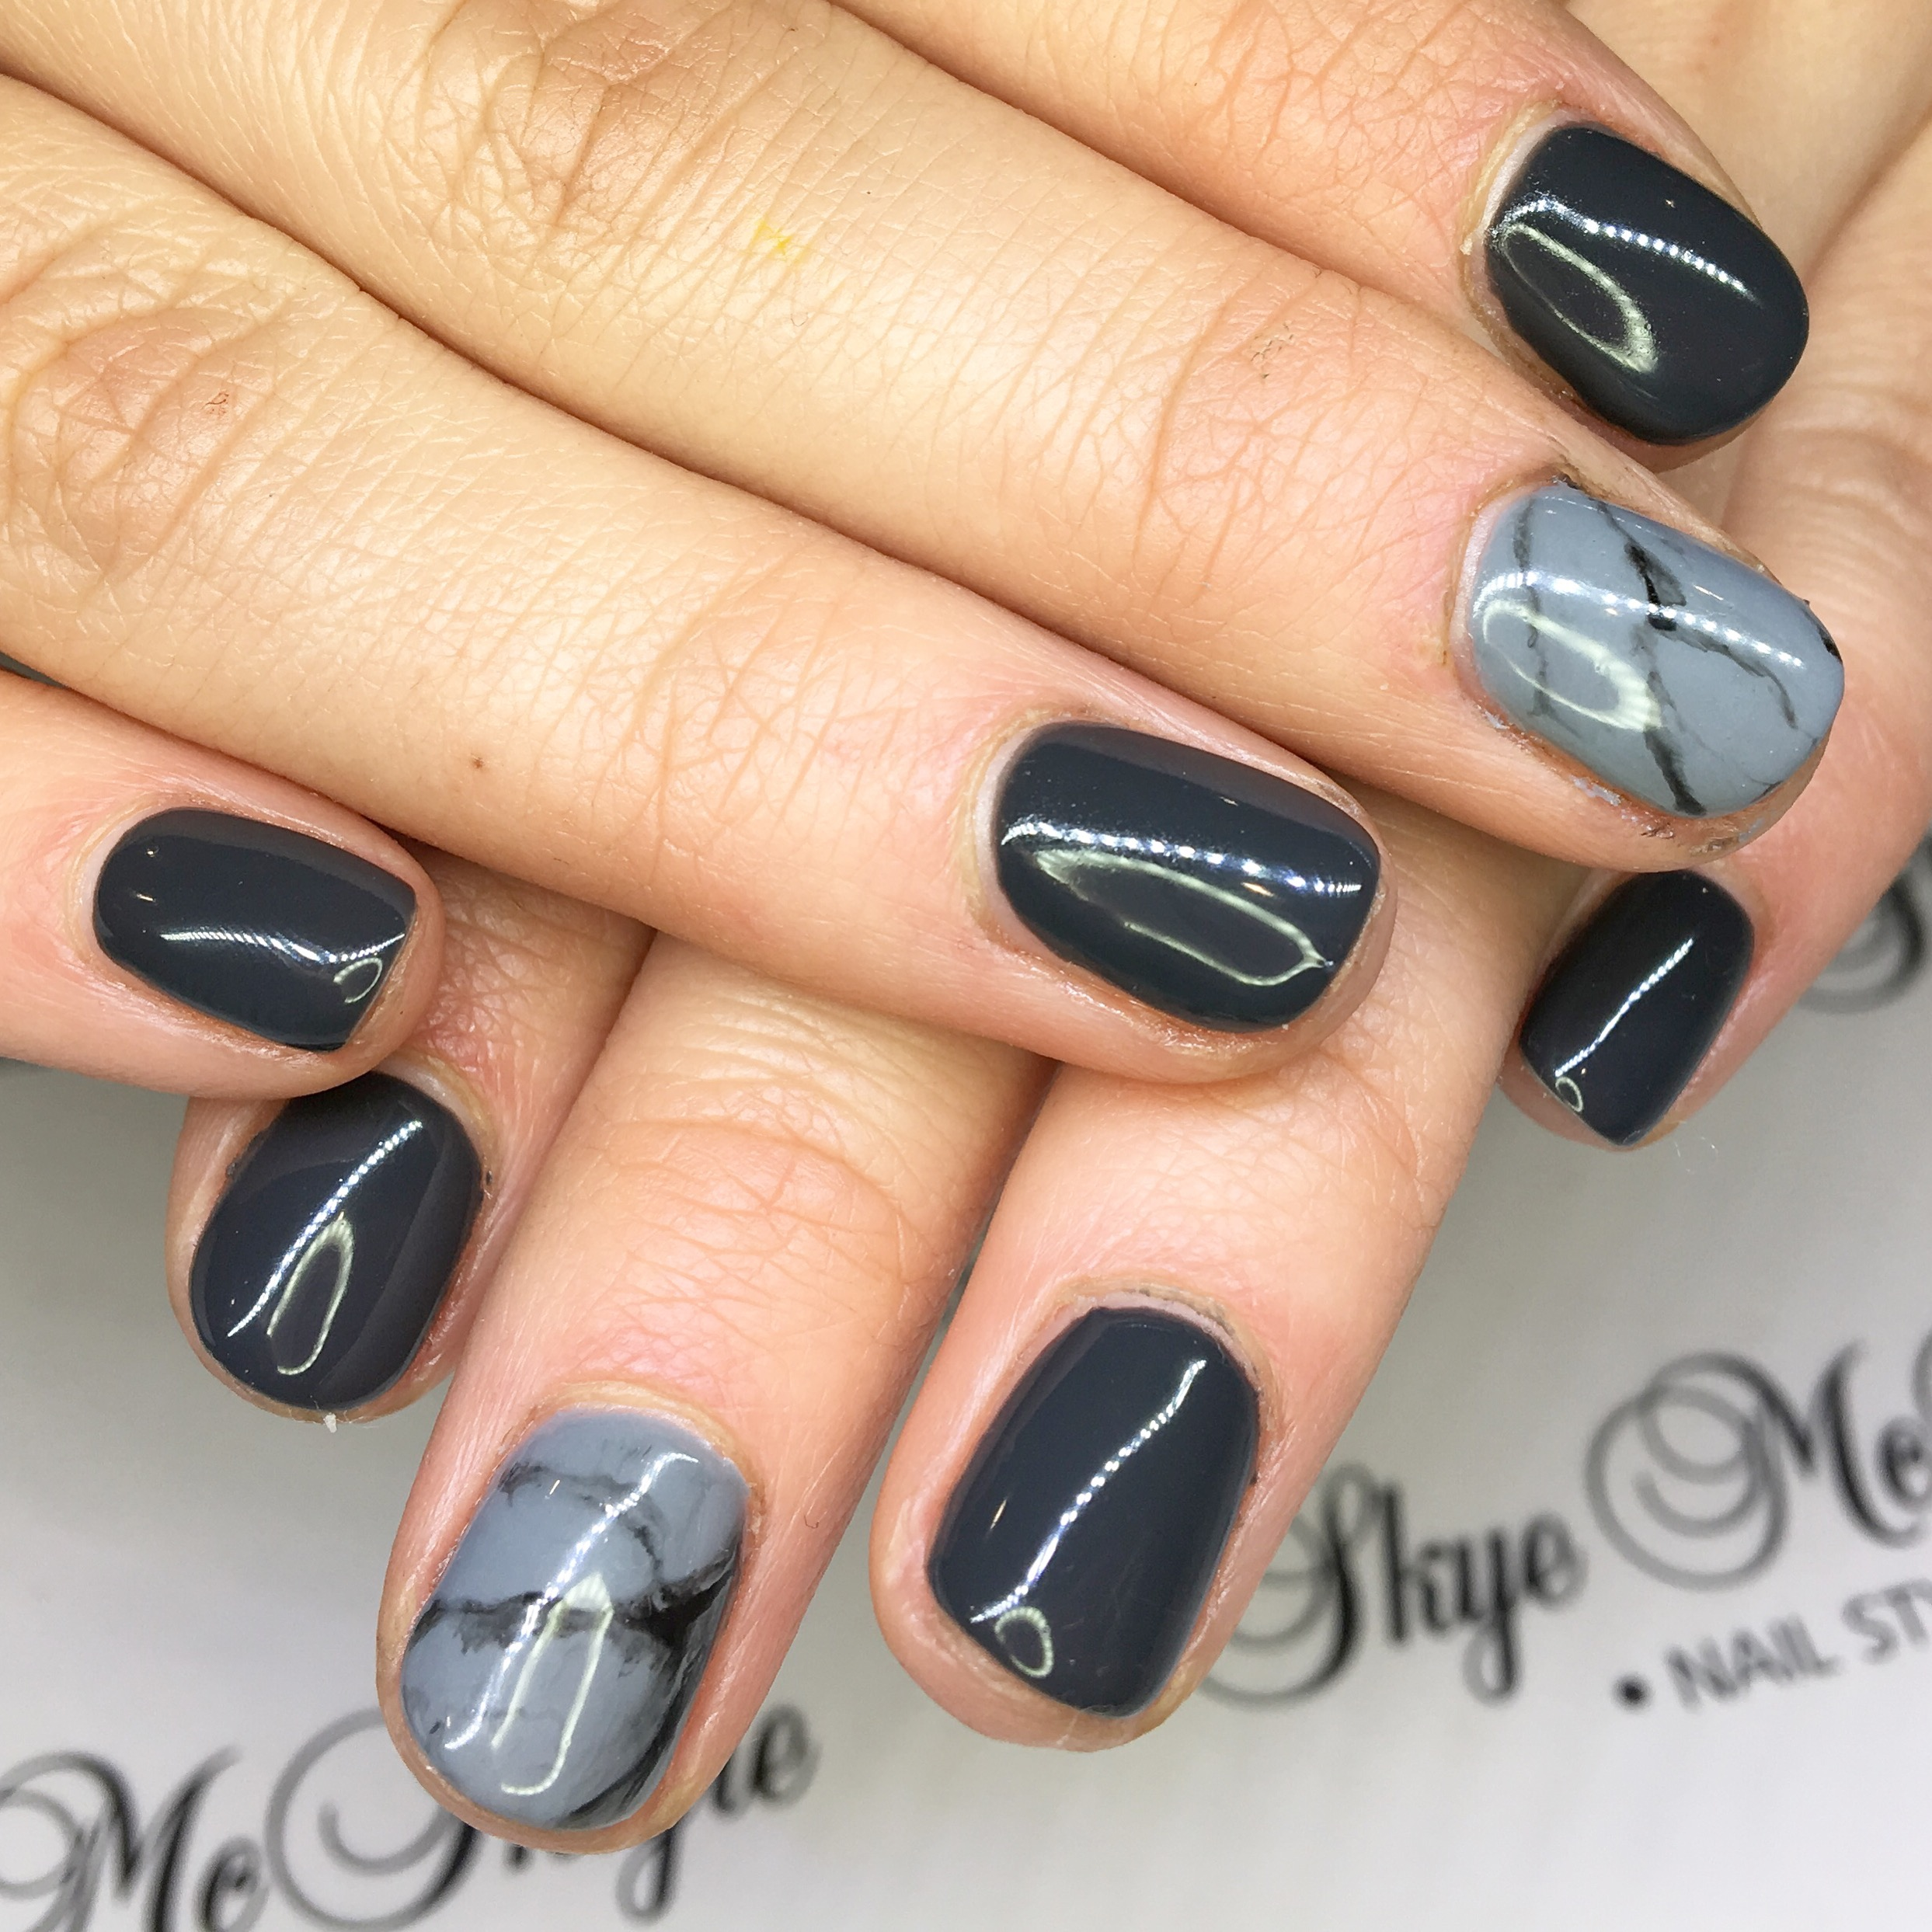 Sydney's No 1 nail and manicure consultant, Skye McIntyre